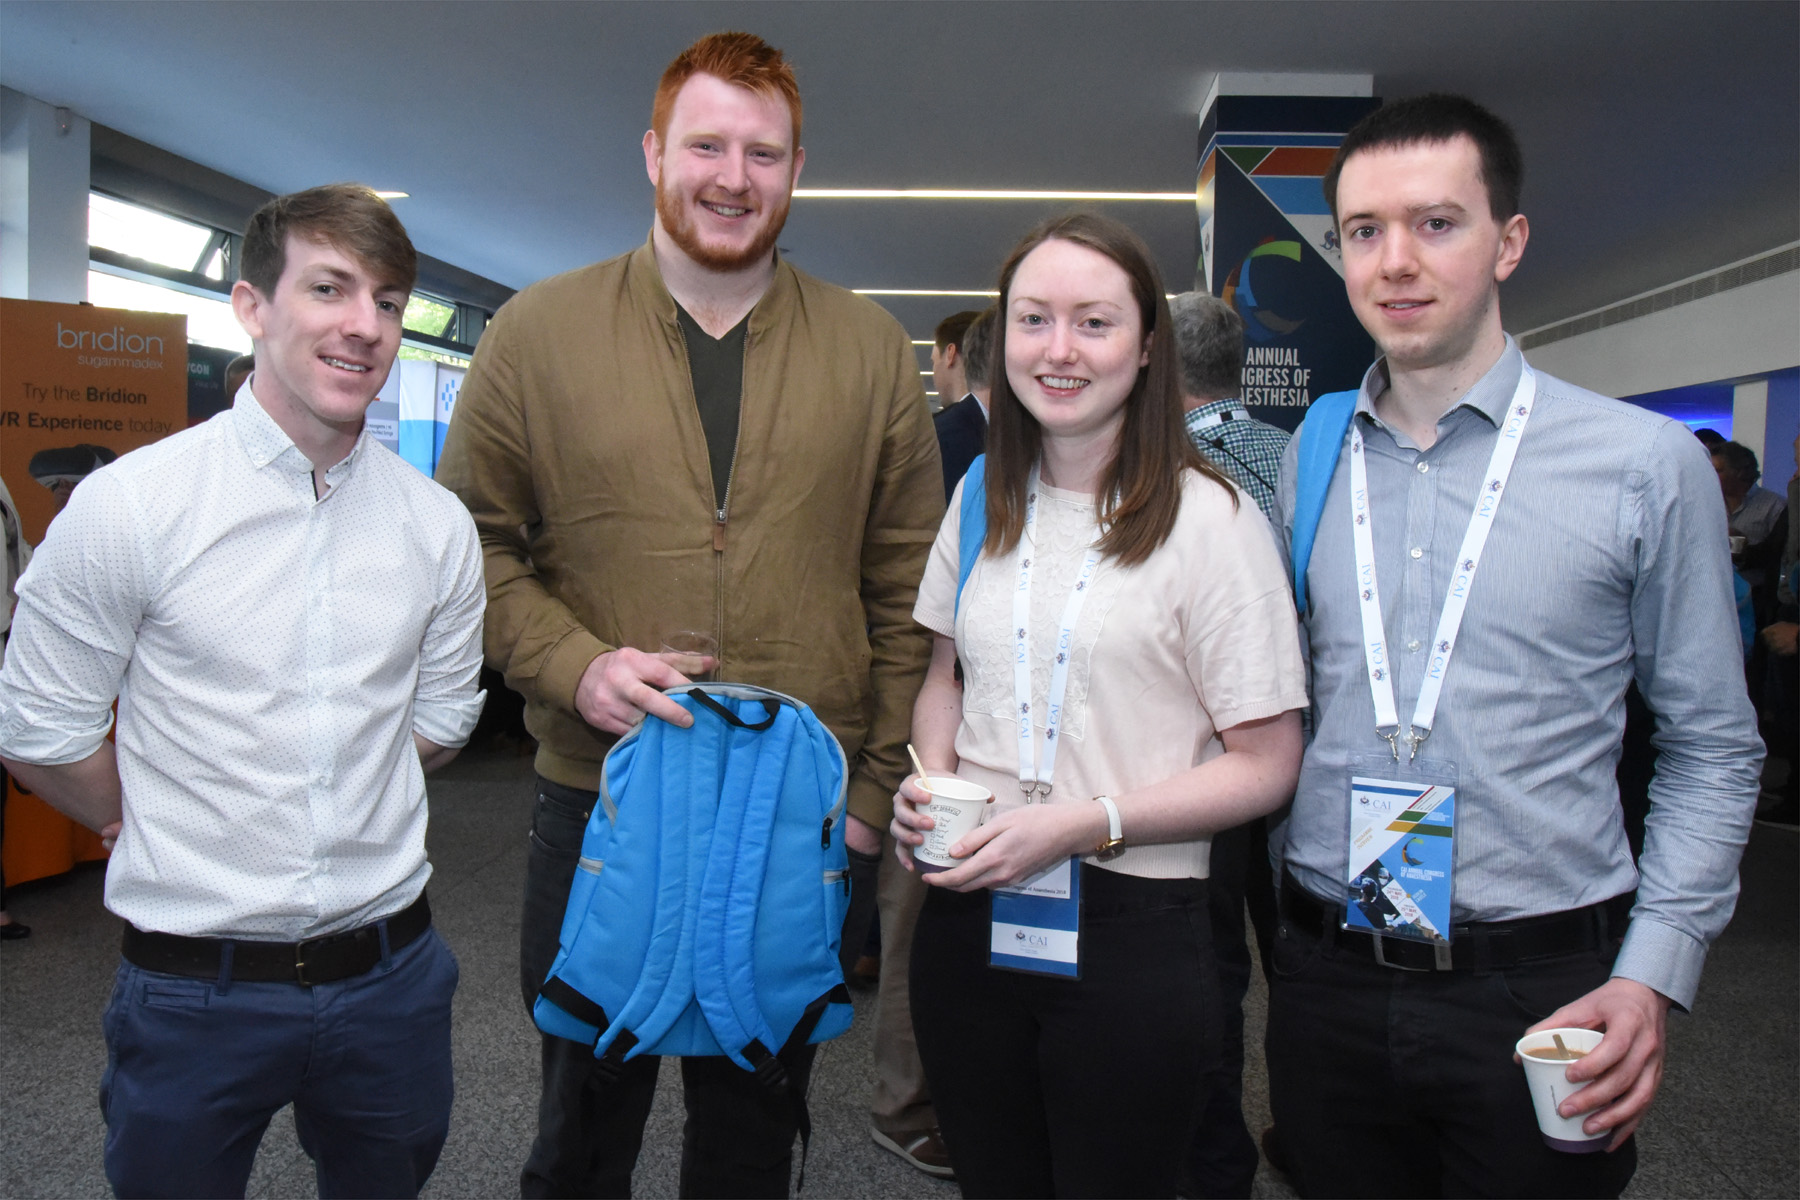 College of Anaesthetists of Ireland Annual Congress 2018 - Final year medical students at UCD, Sean Griffin, Diarmaid Hickey, Sinead Ryan and Daniel Ferry